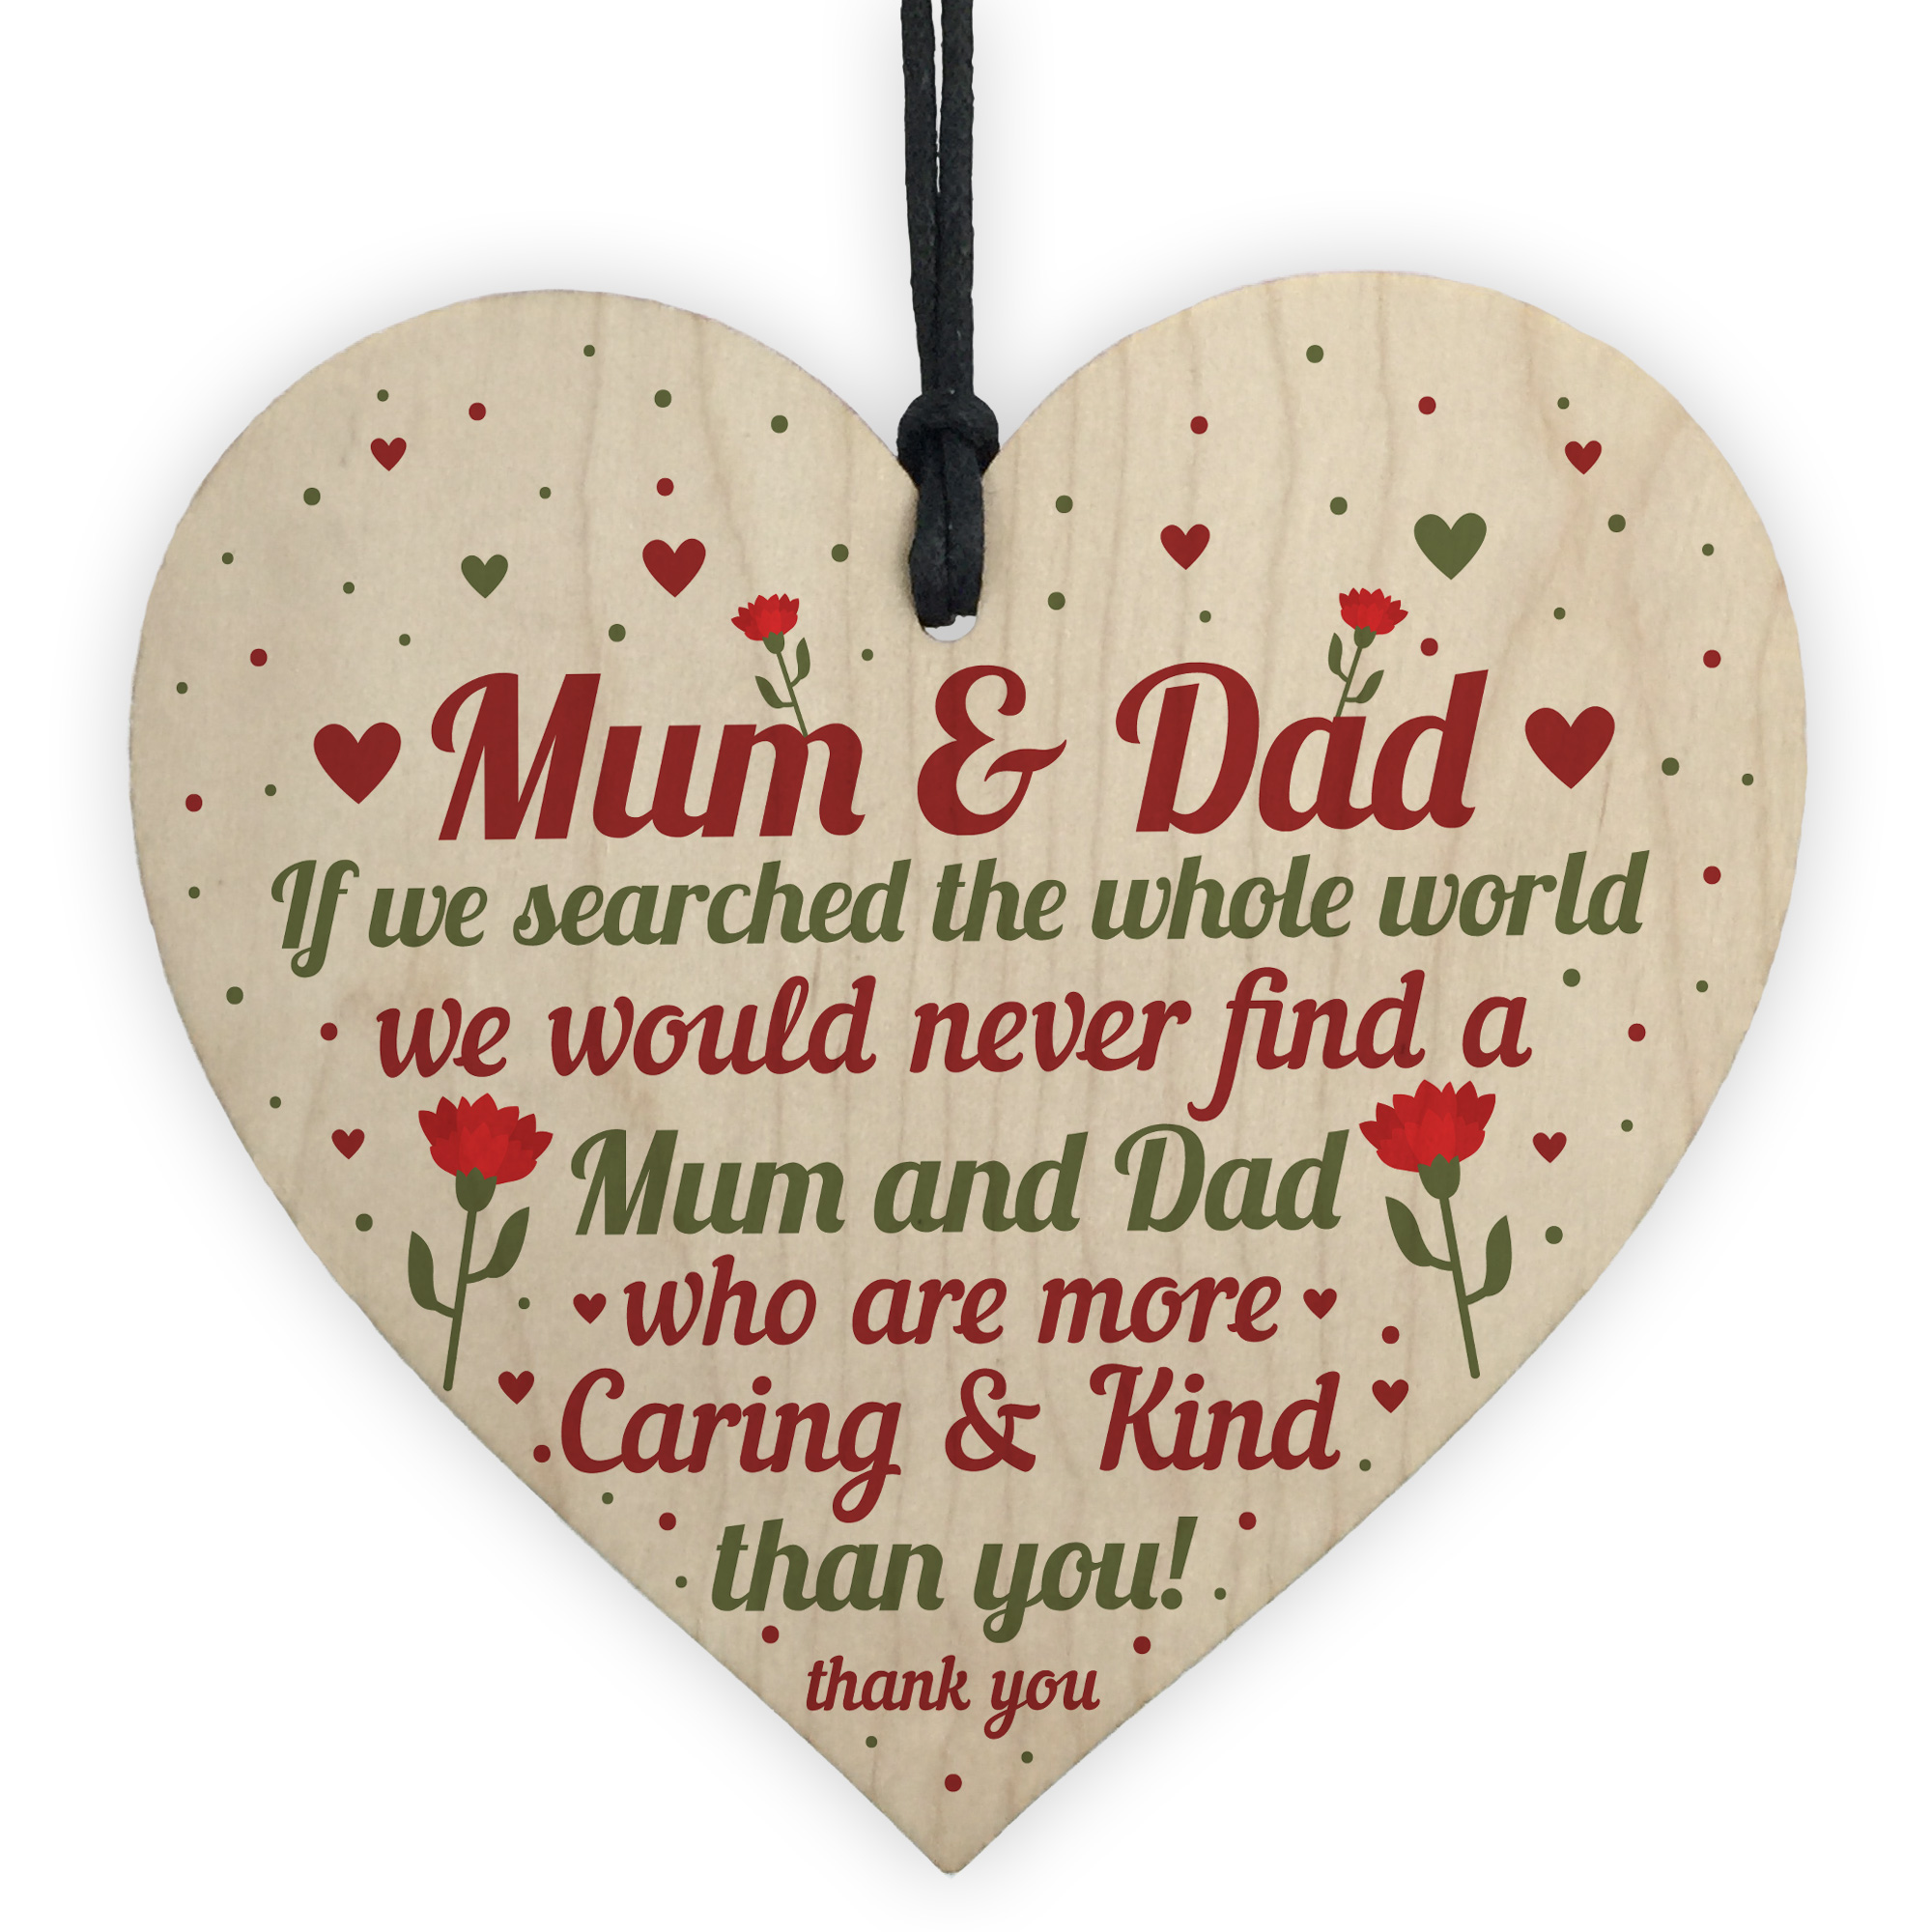 Heart Shaped Gift for Dad or Mum